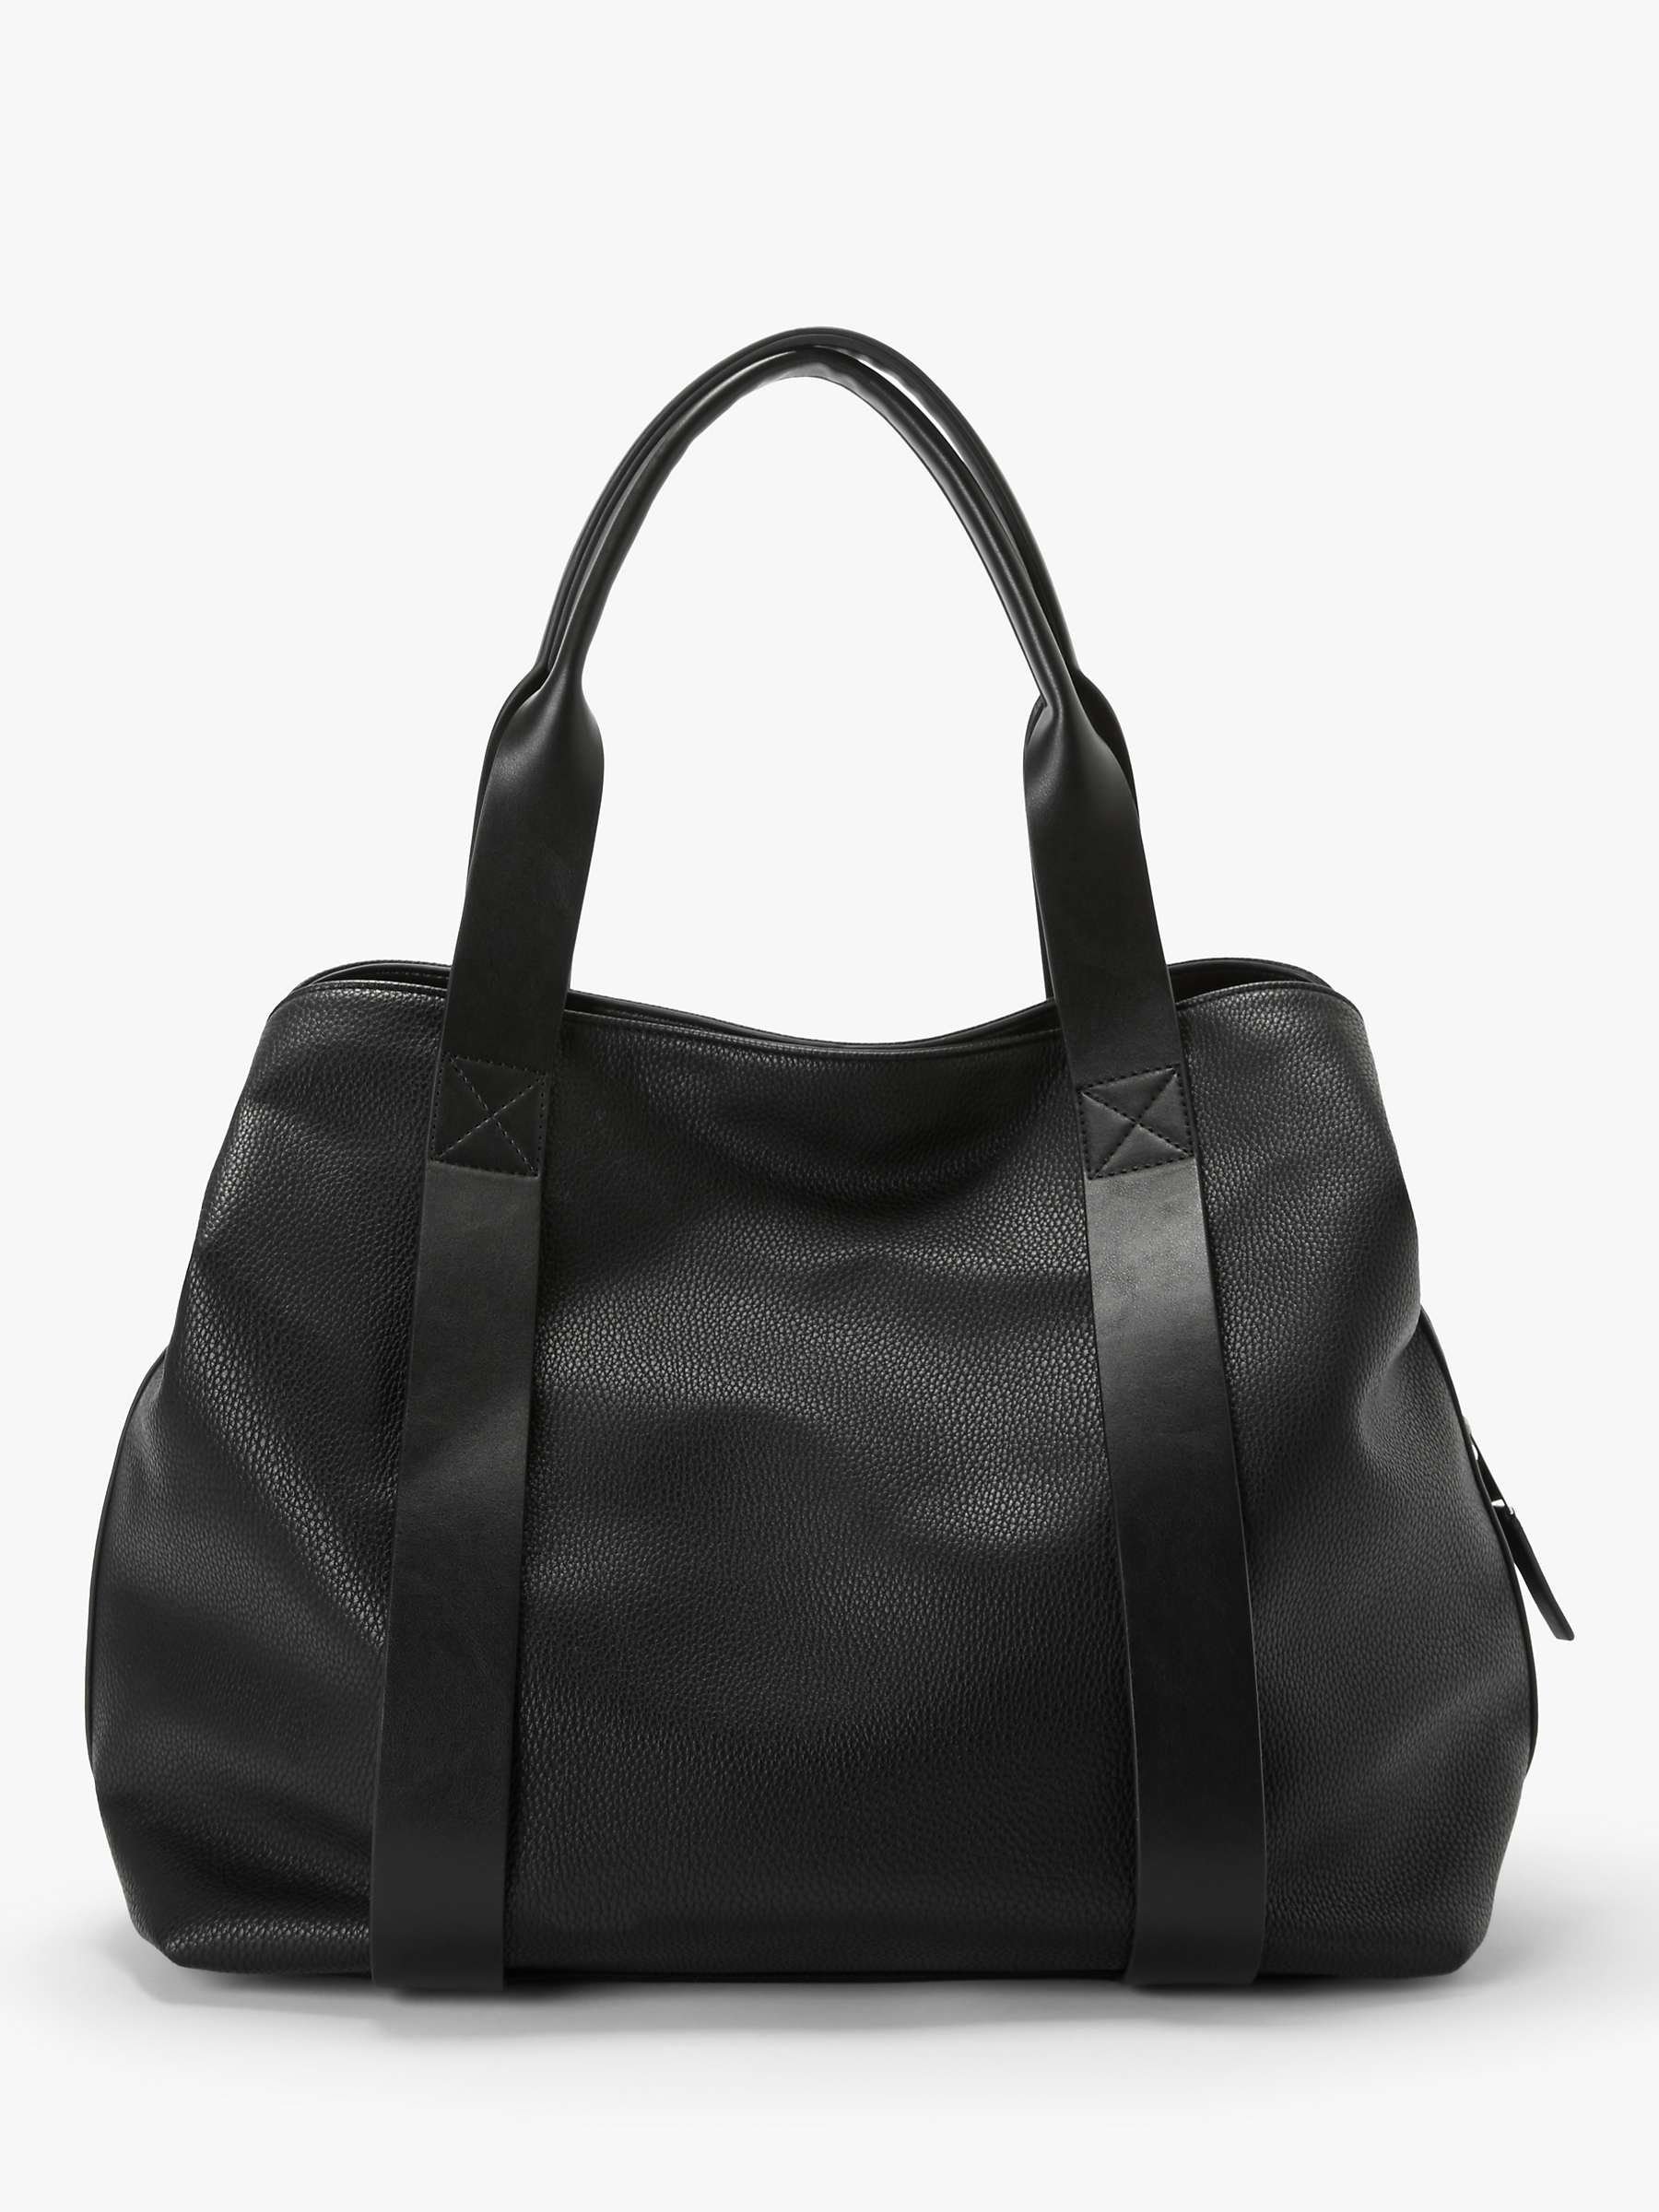 Kin Sia Compartment Tote Bag, Black by John Lewis